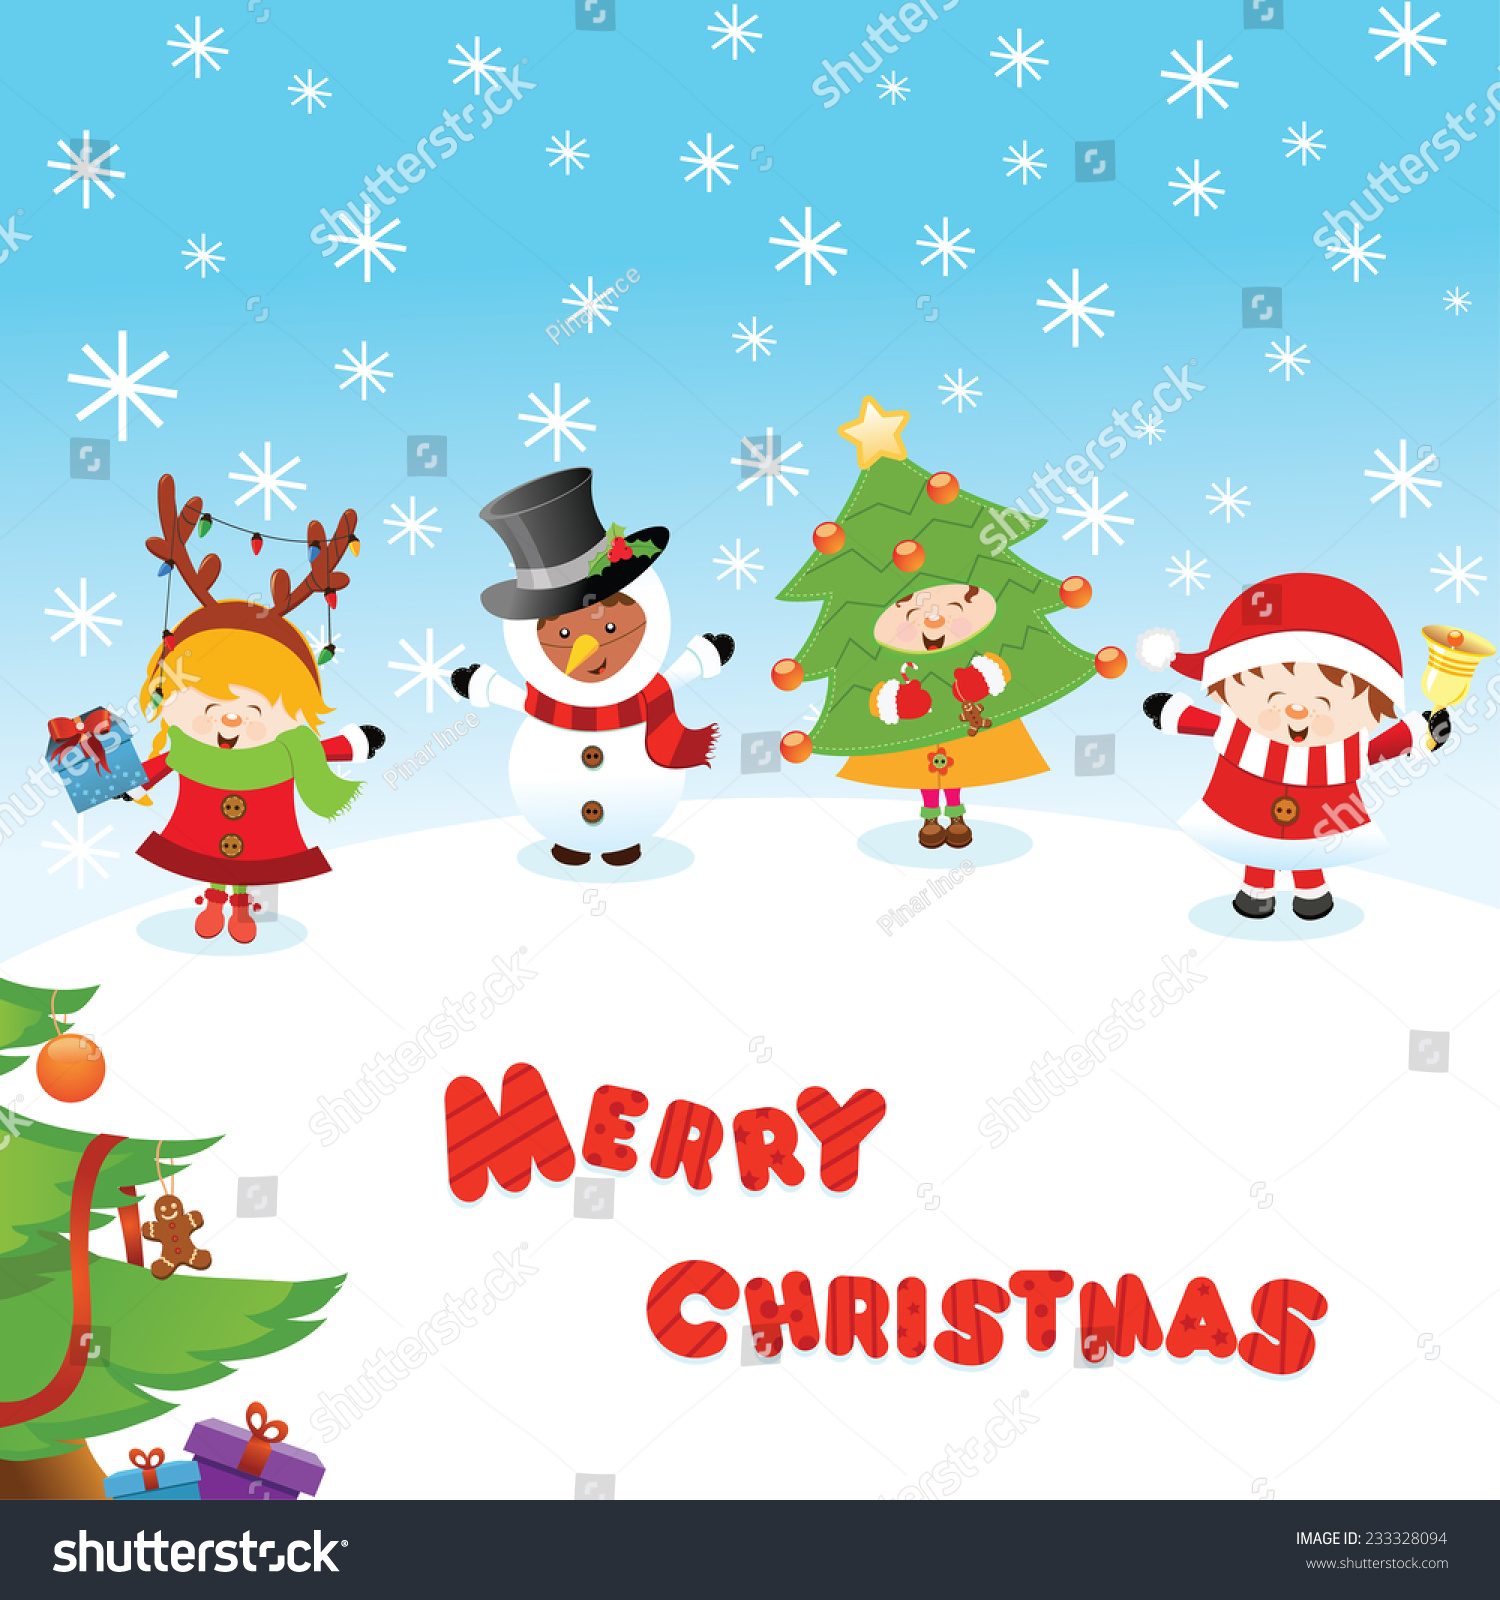 Costumed kids christmas messages stock vector 233328094 shutterstock costumed kids christmas messages m4hsunfo